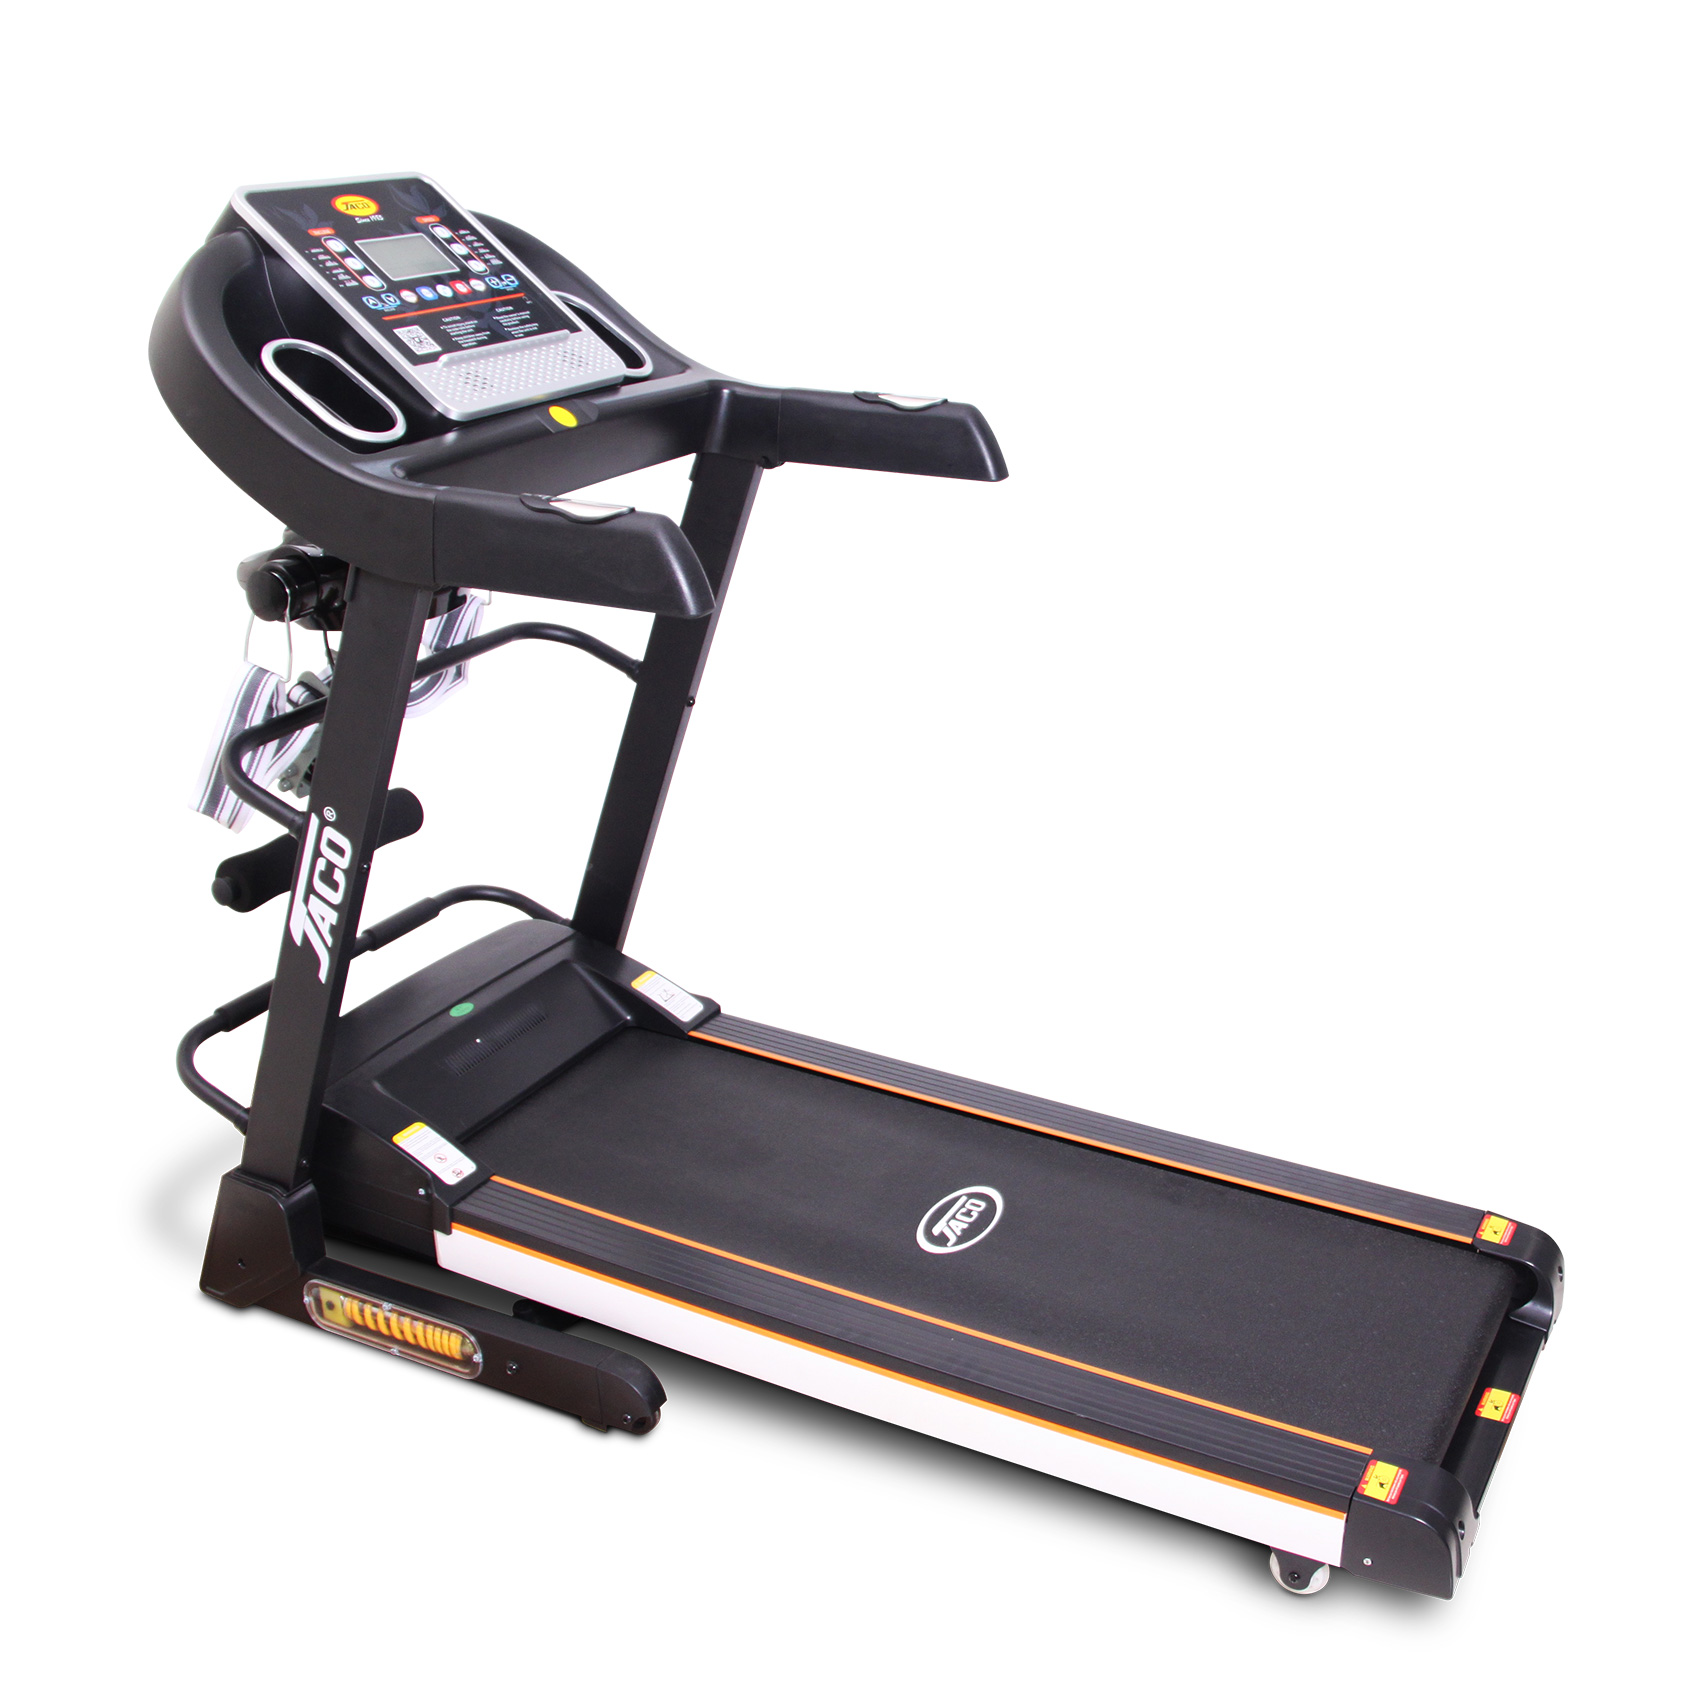 Treadmill JC822 des Display